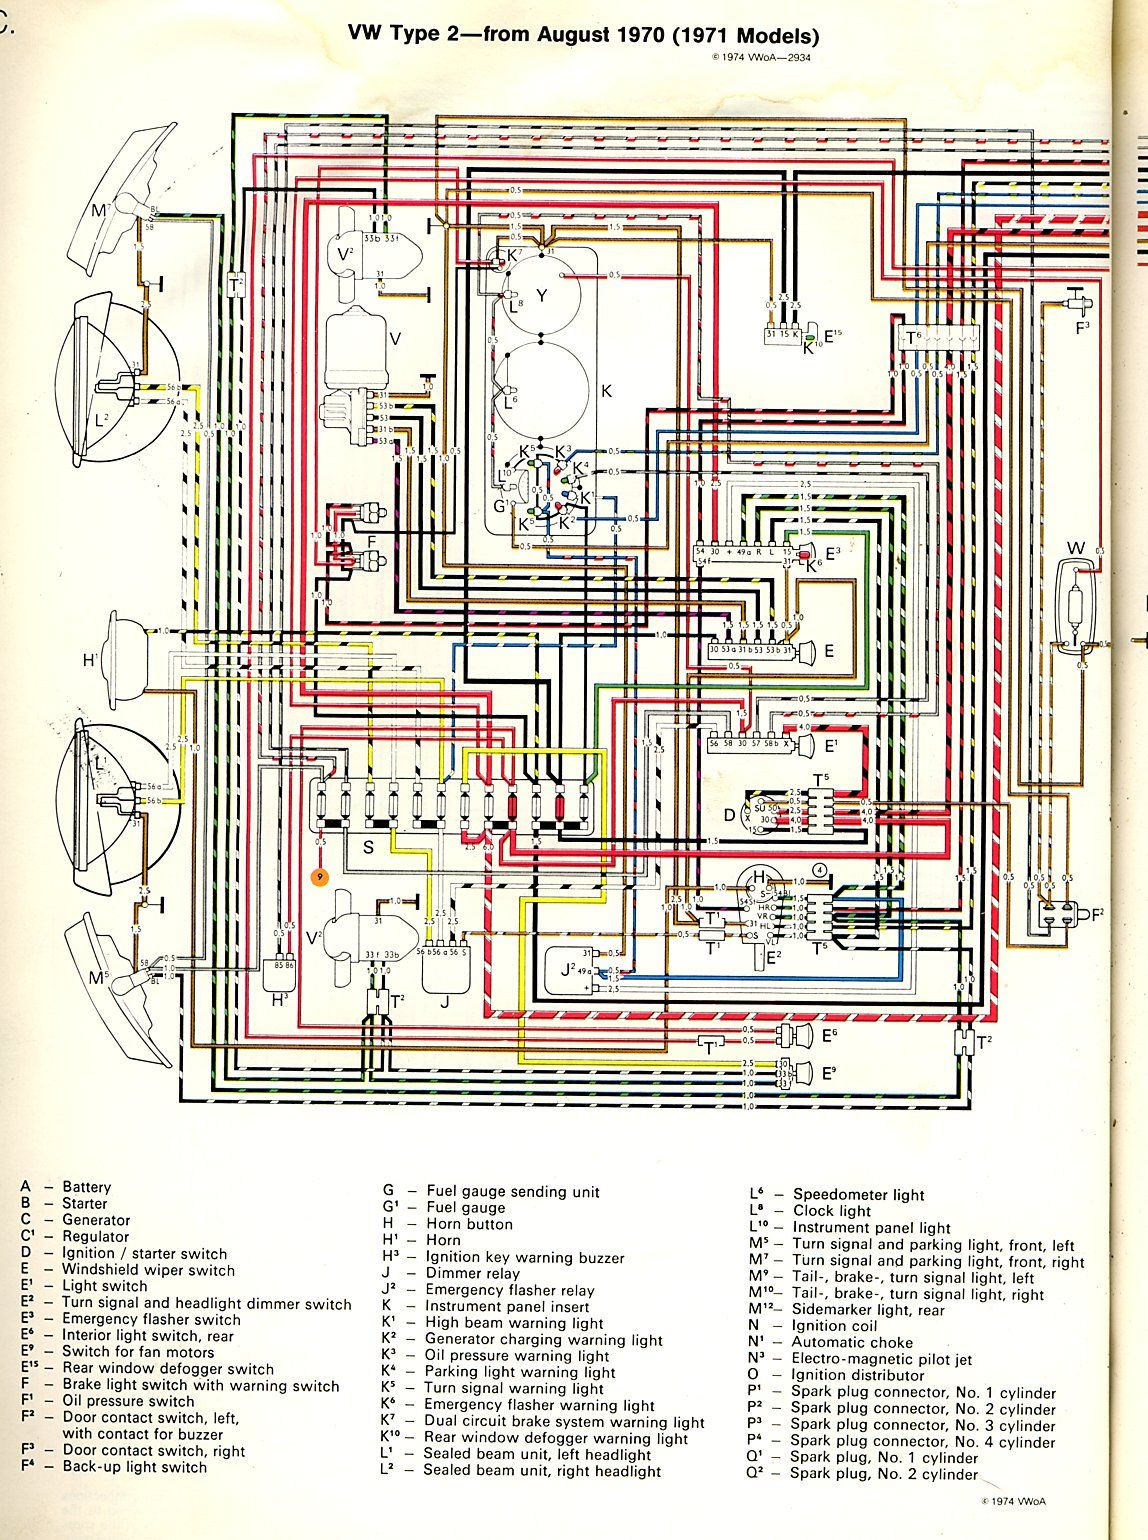 26730f3f6ceb3f1e1b50646c57249616 1971 bus wiring diagram thegoldenbug com stuff to try 1968 vw bus wiring diagram at bakdesigns.co